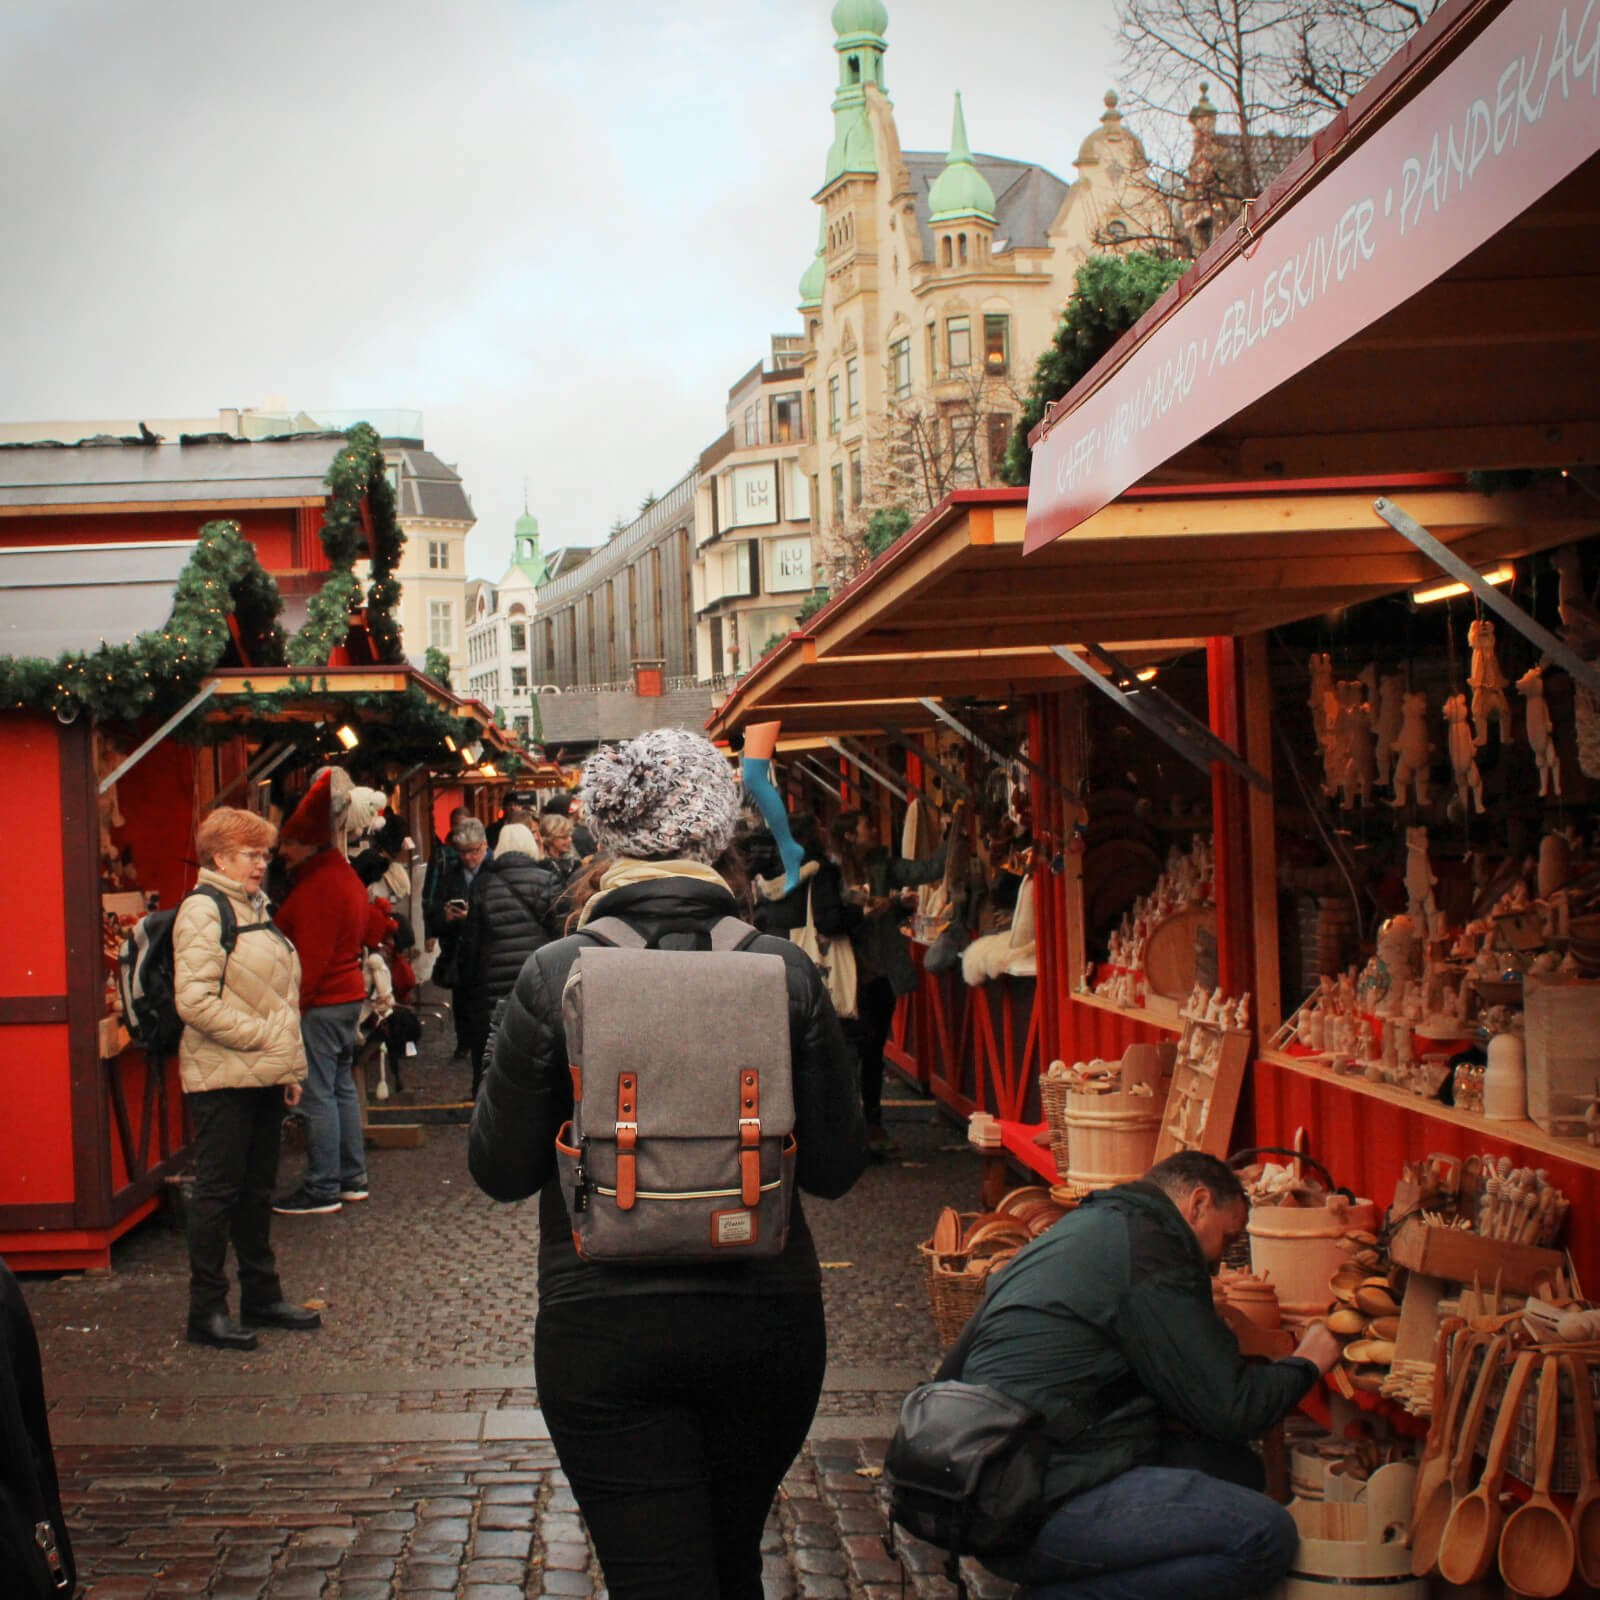 Holiday Food In Copenhagen, Denmark: What To Eat This Winter